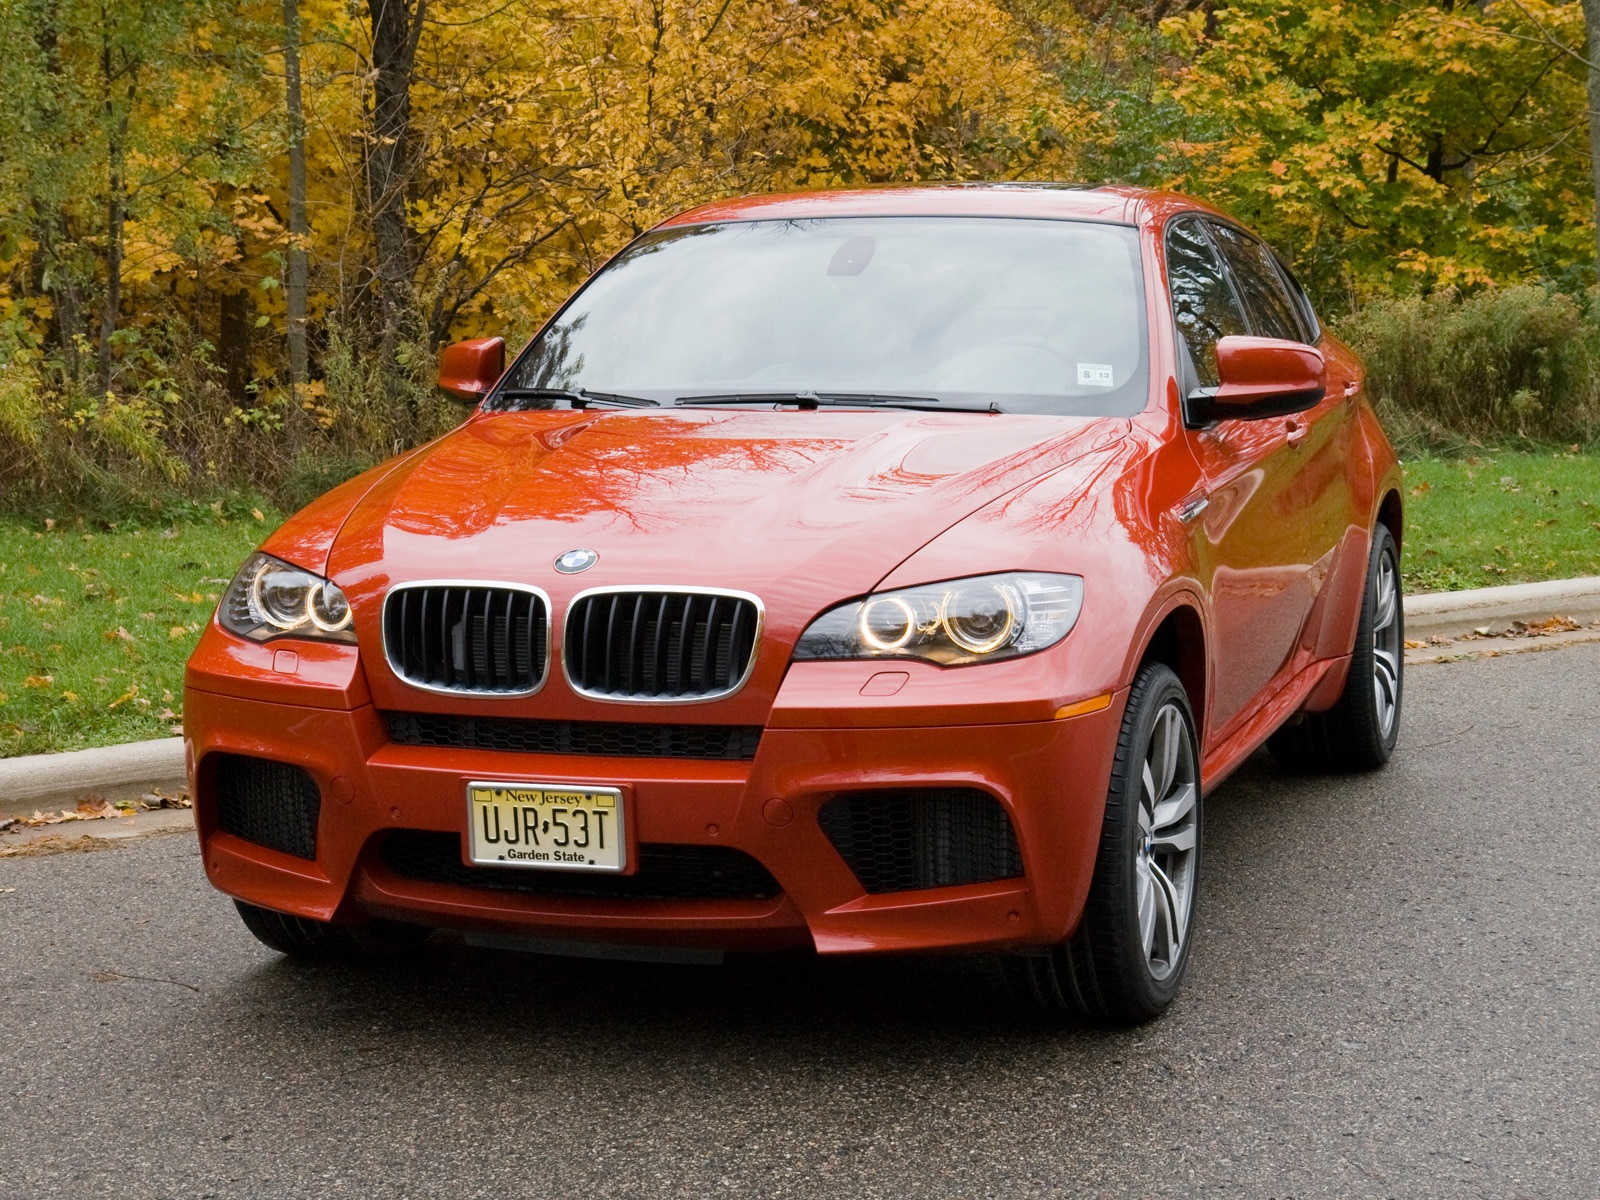 2010 bmw x6 m bmw luxury crossover suv review automobile magazine. Black Bedroom Furniture Sets. Home Design Ideas